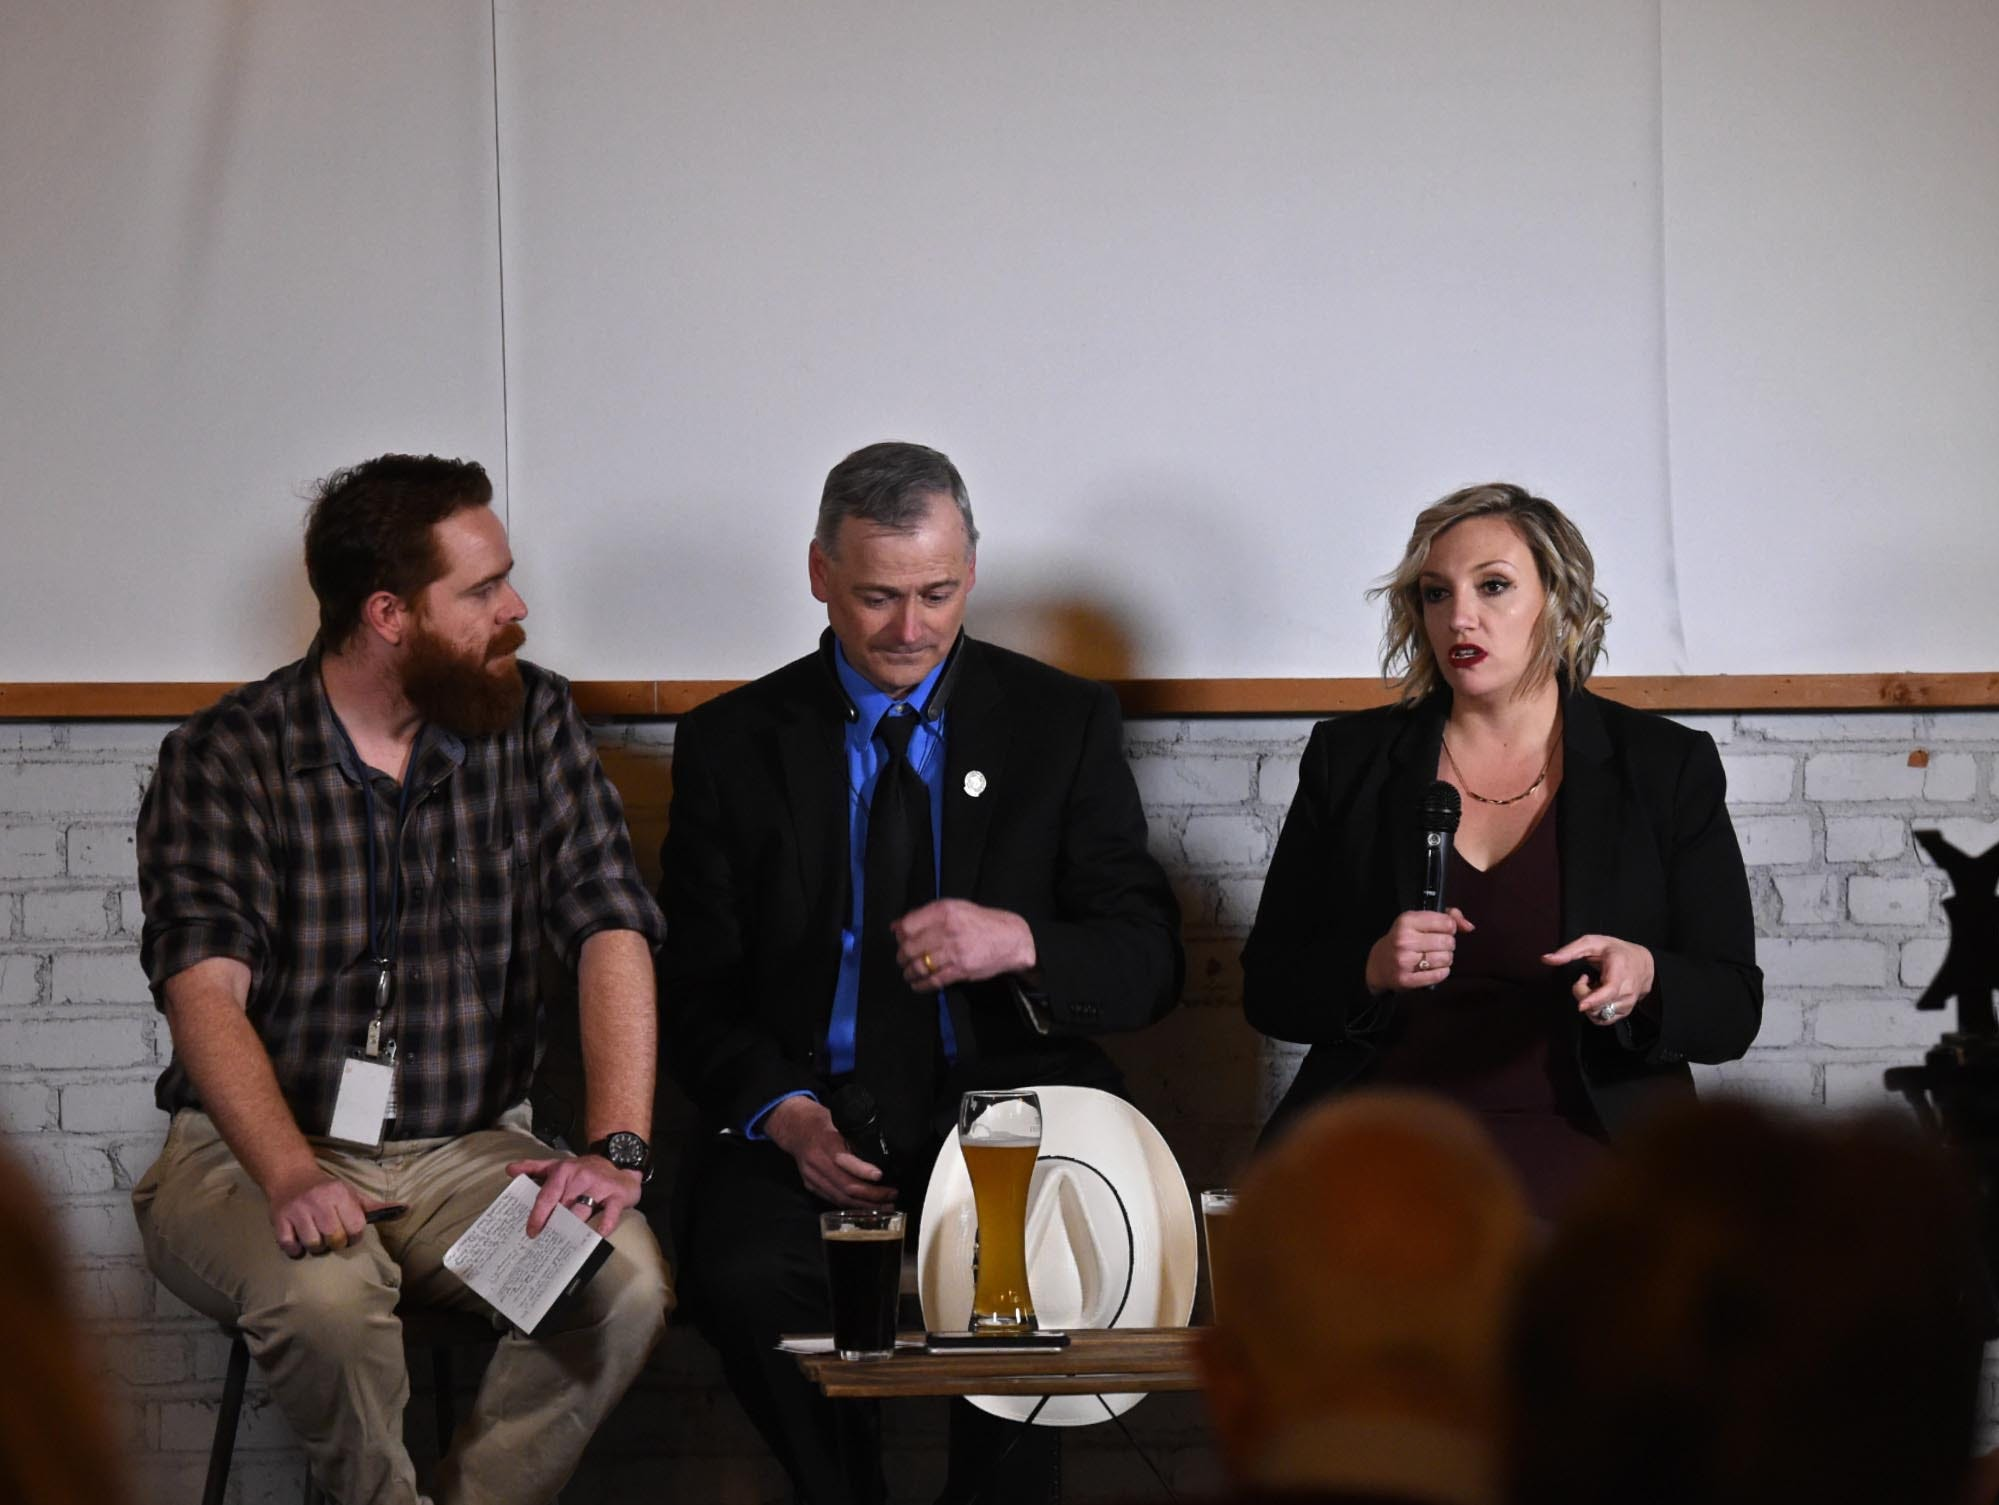 This month's Pints and Politics included State Senator Nicole Cannizzaro and Minority Leader Senator James Settelmeyer. The event was moderated by RGJ political reporter James DeHaven at Craft Wine-n-Beer in Midtown on Tuesday Feb. 26, 2019.